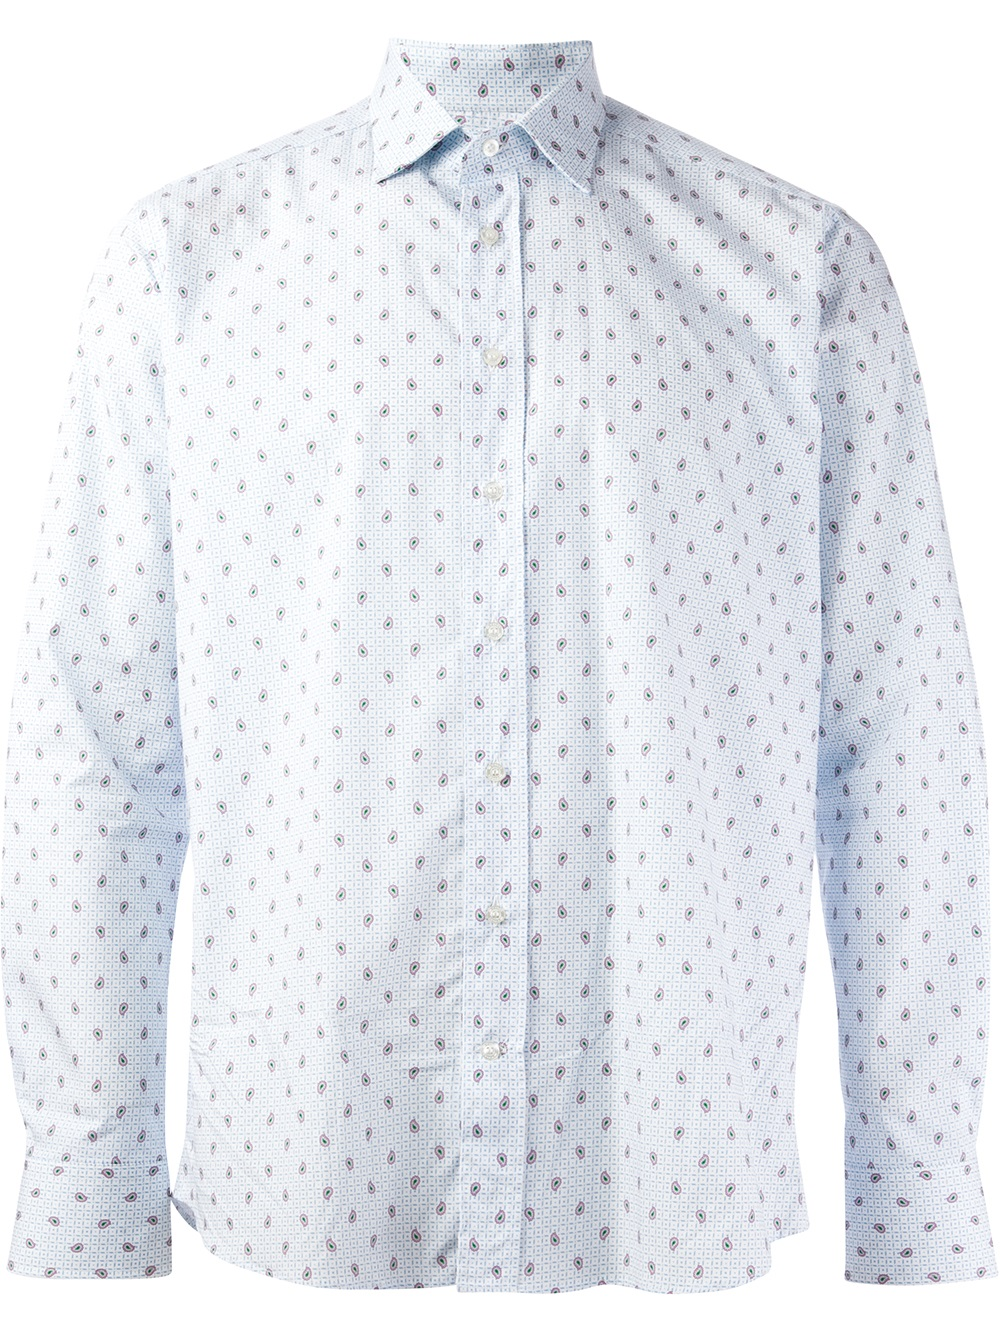 Etro Printed Shirt in White for Men | Lyst